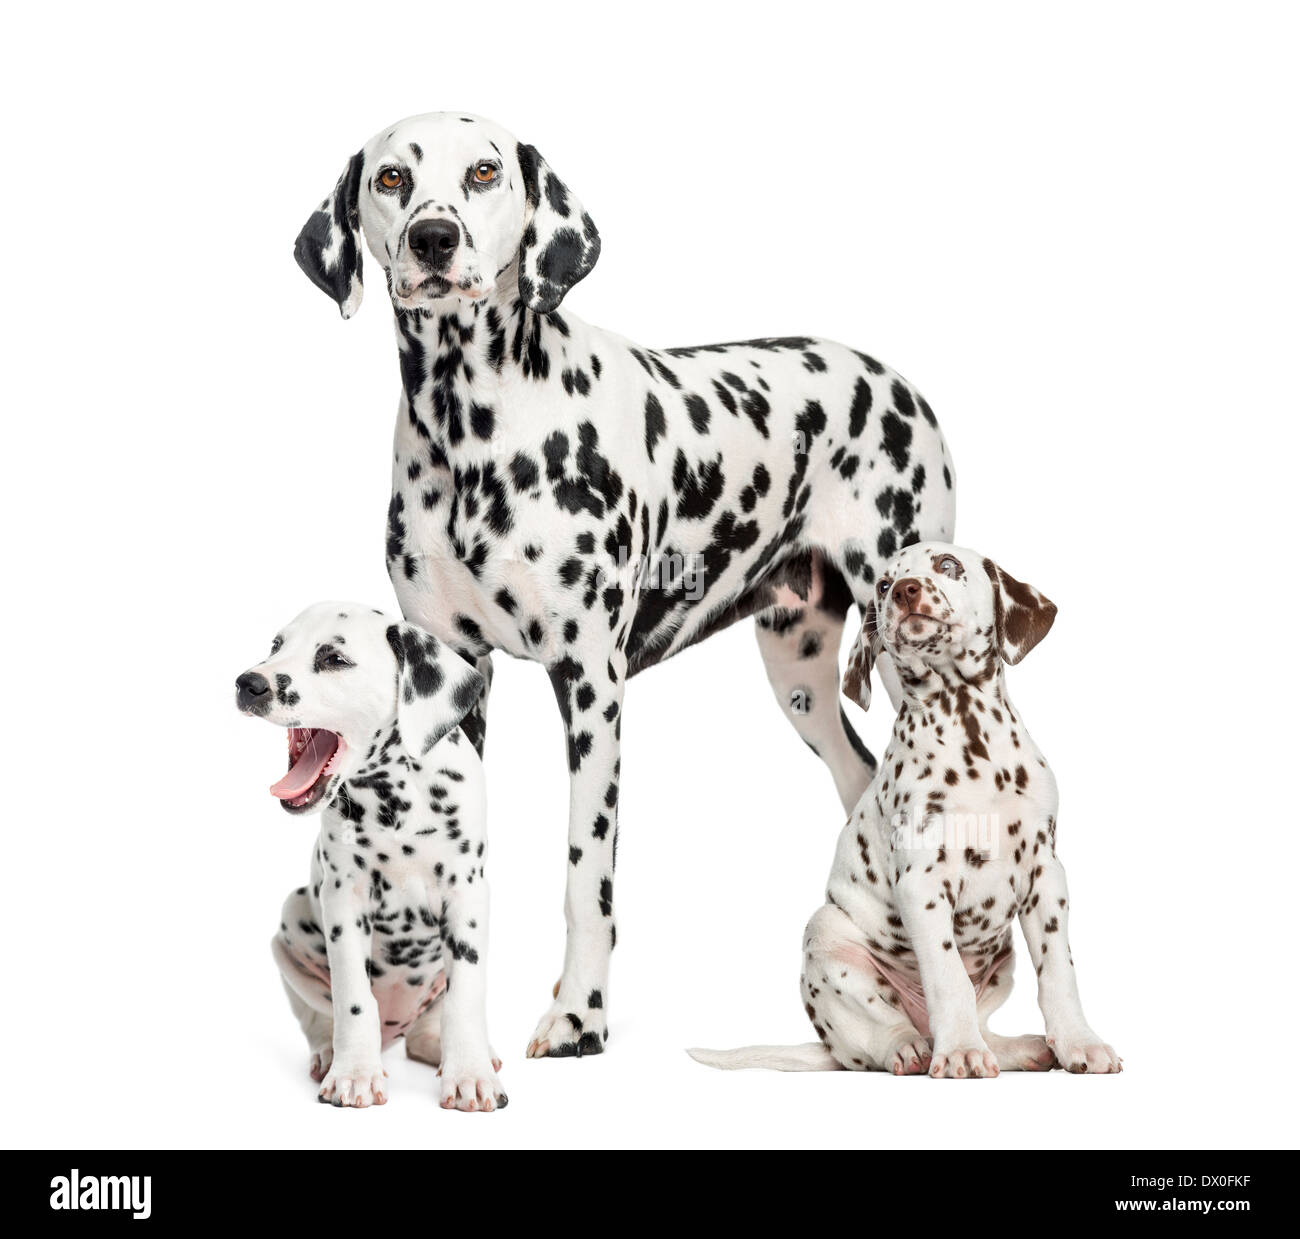 Dalmatian mom and puppies against white background - Stock Image